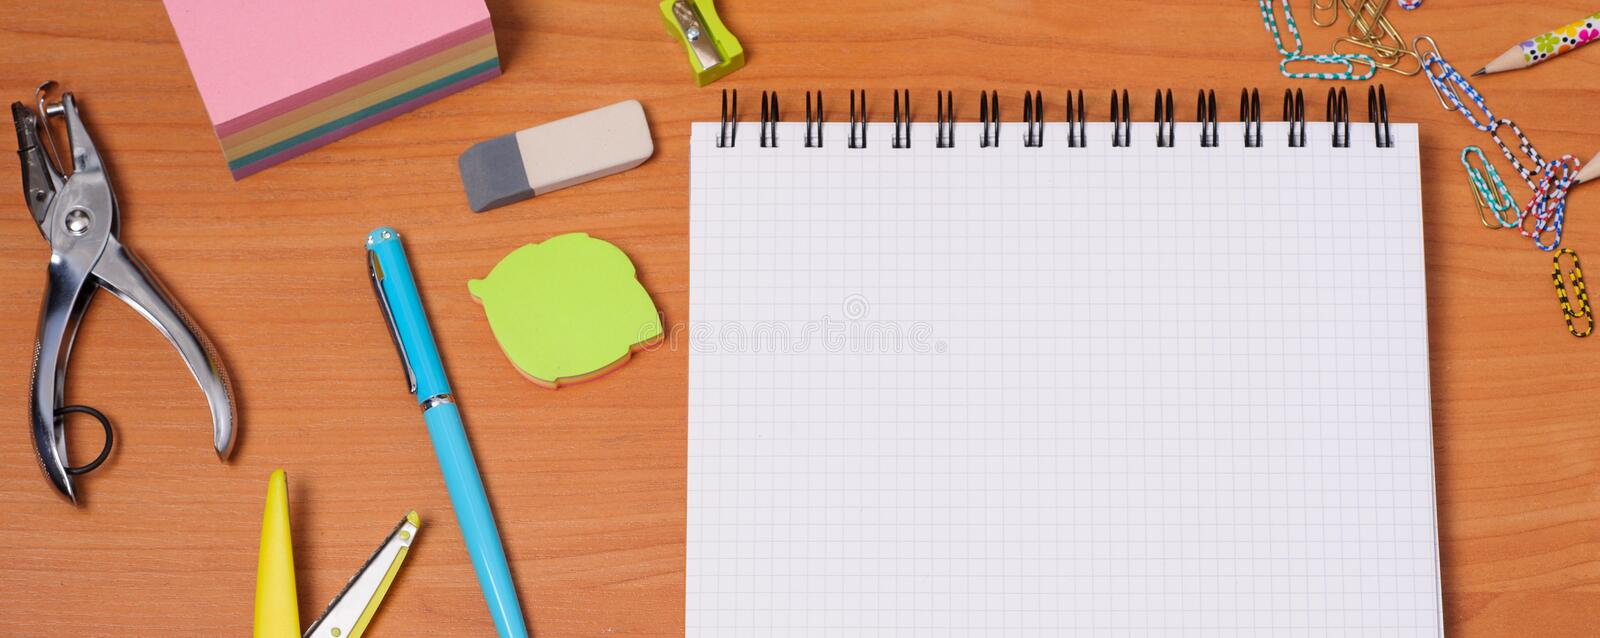 Top view of office tools with blank notebook on wooden table royalty free stock photo